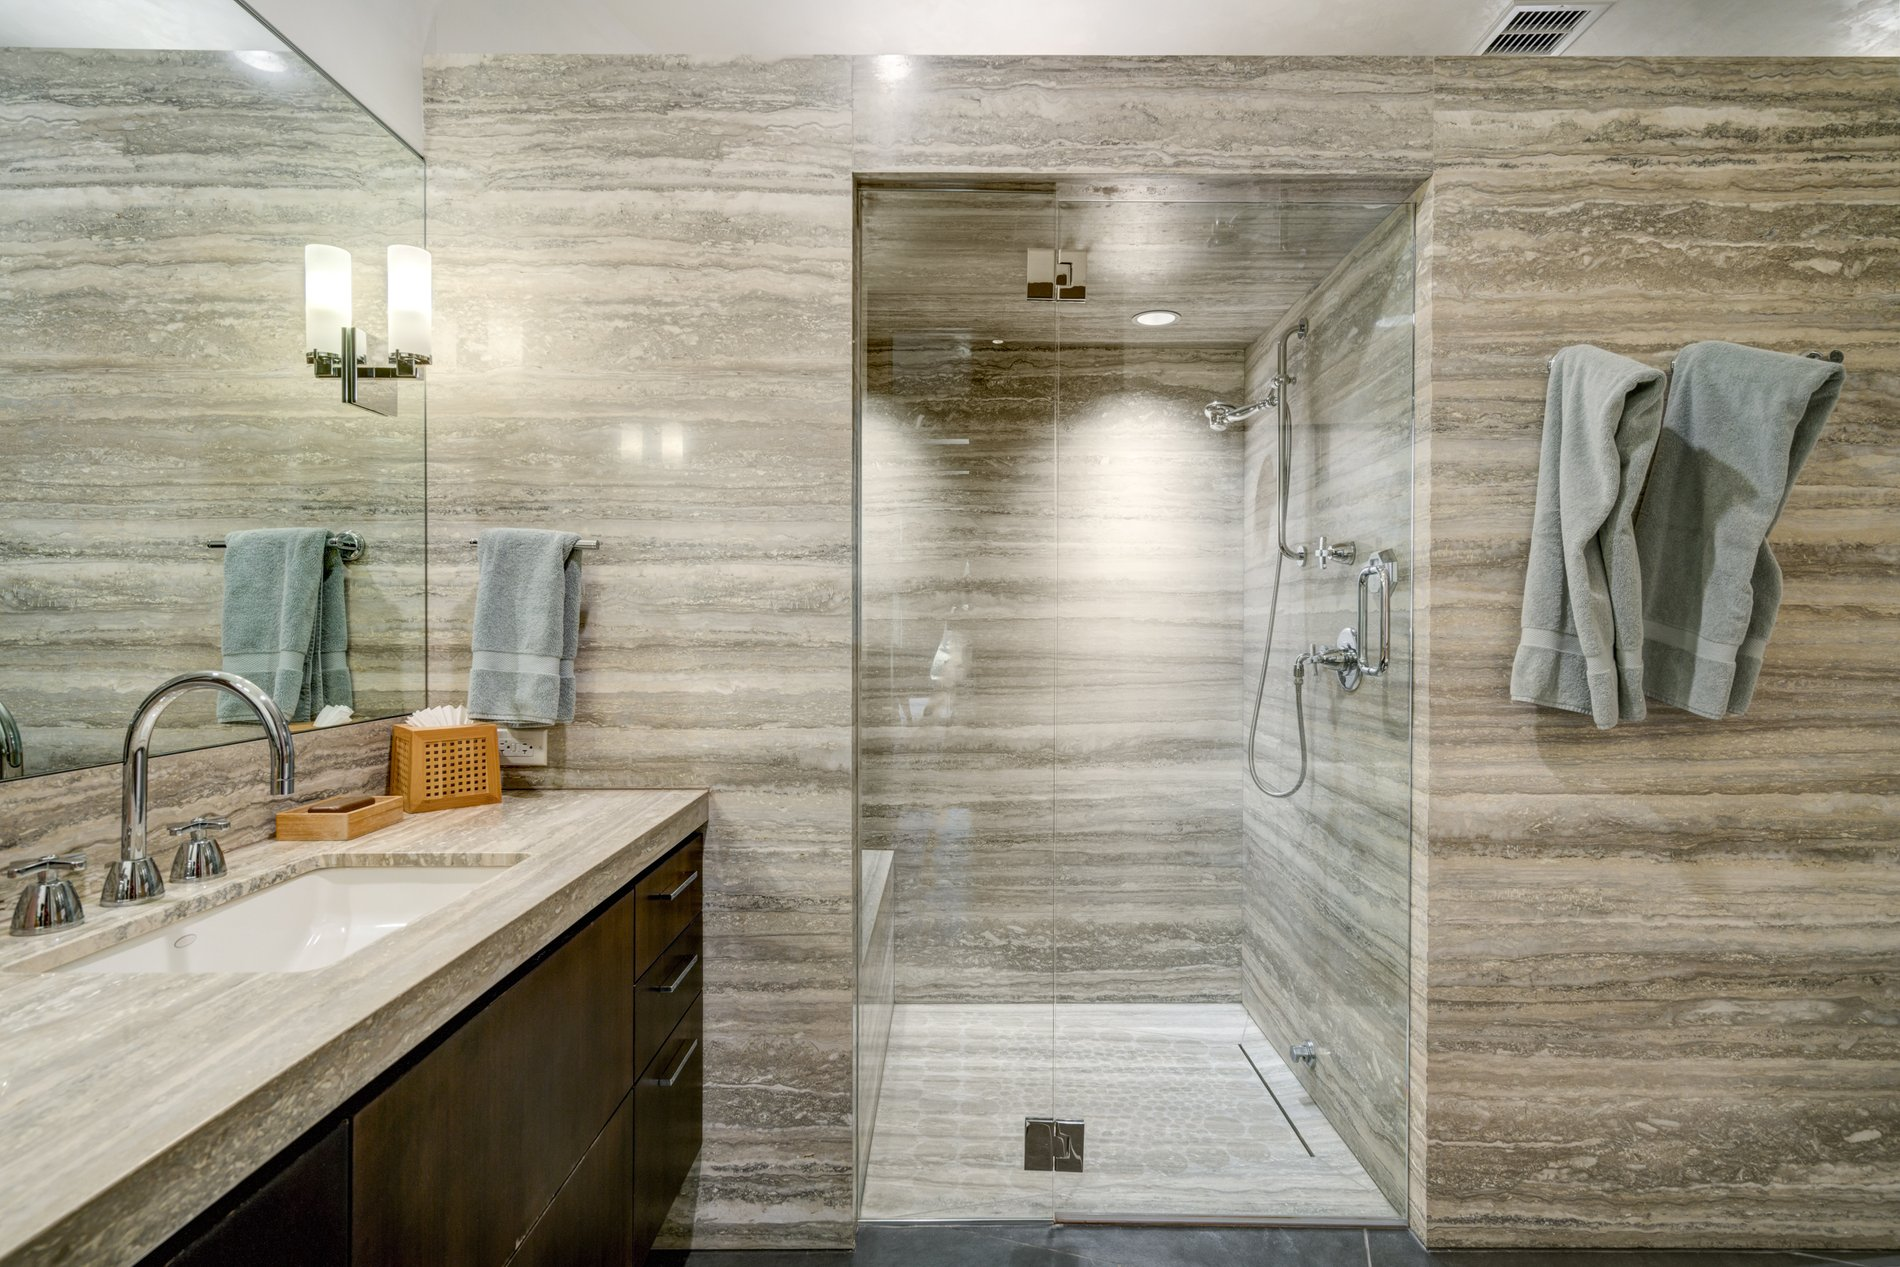 Another fantastic bathroom finished with stone slabs, real wood, tile and glass.